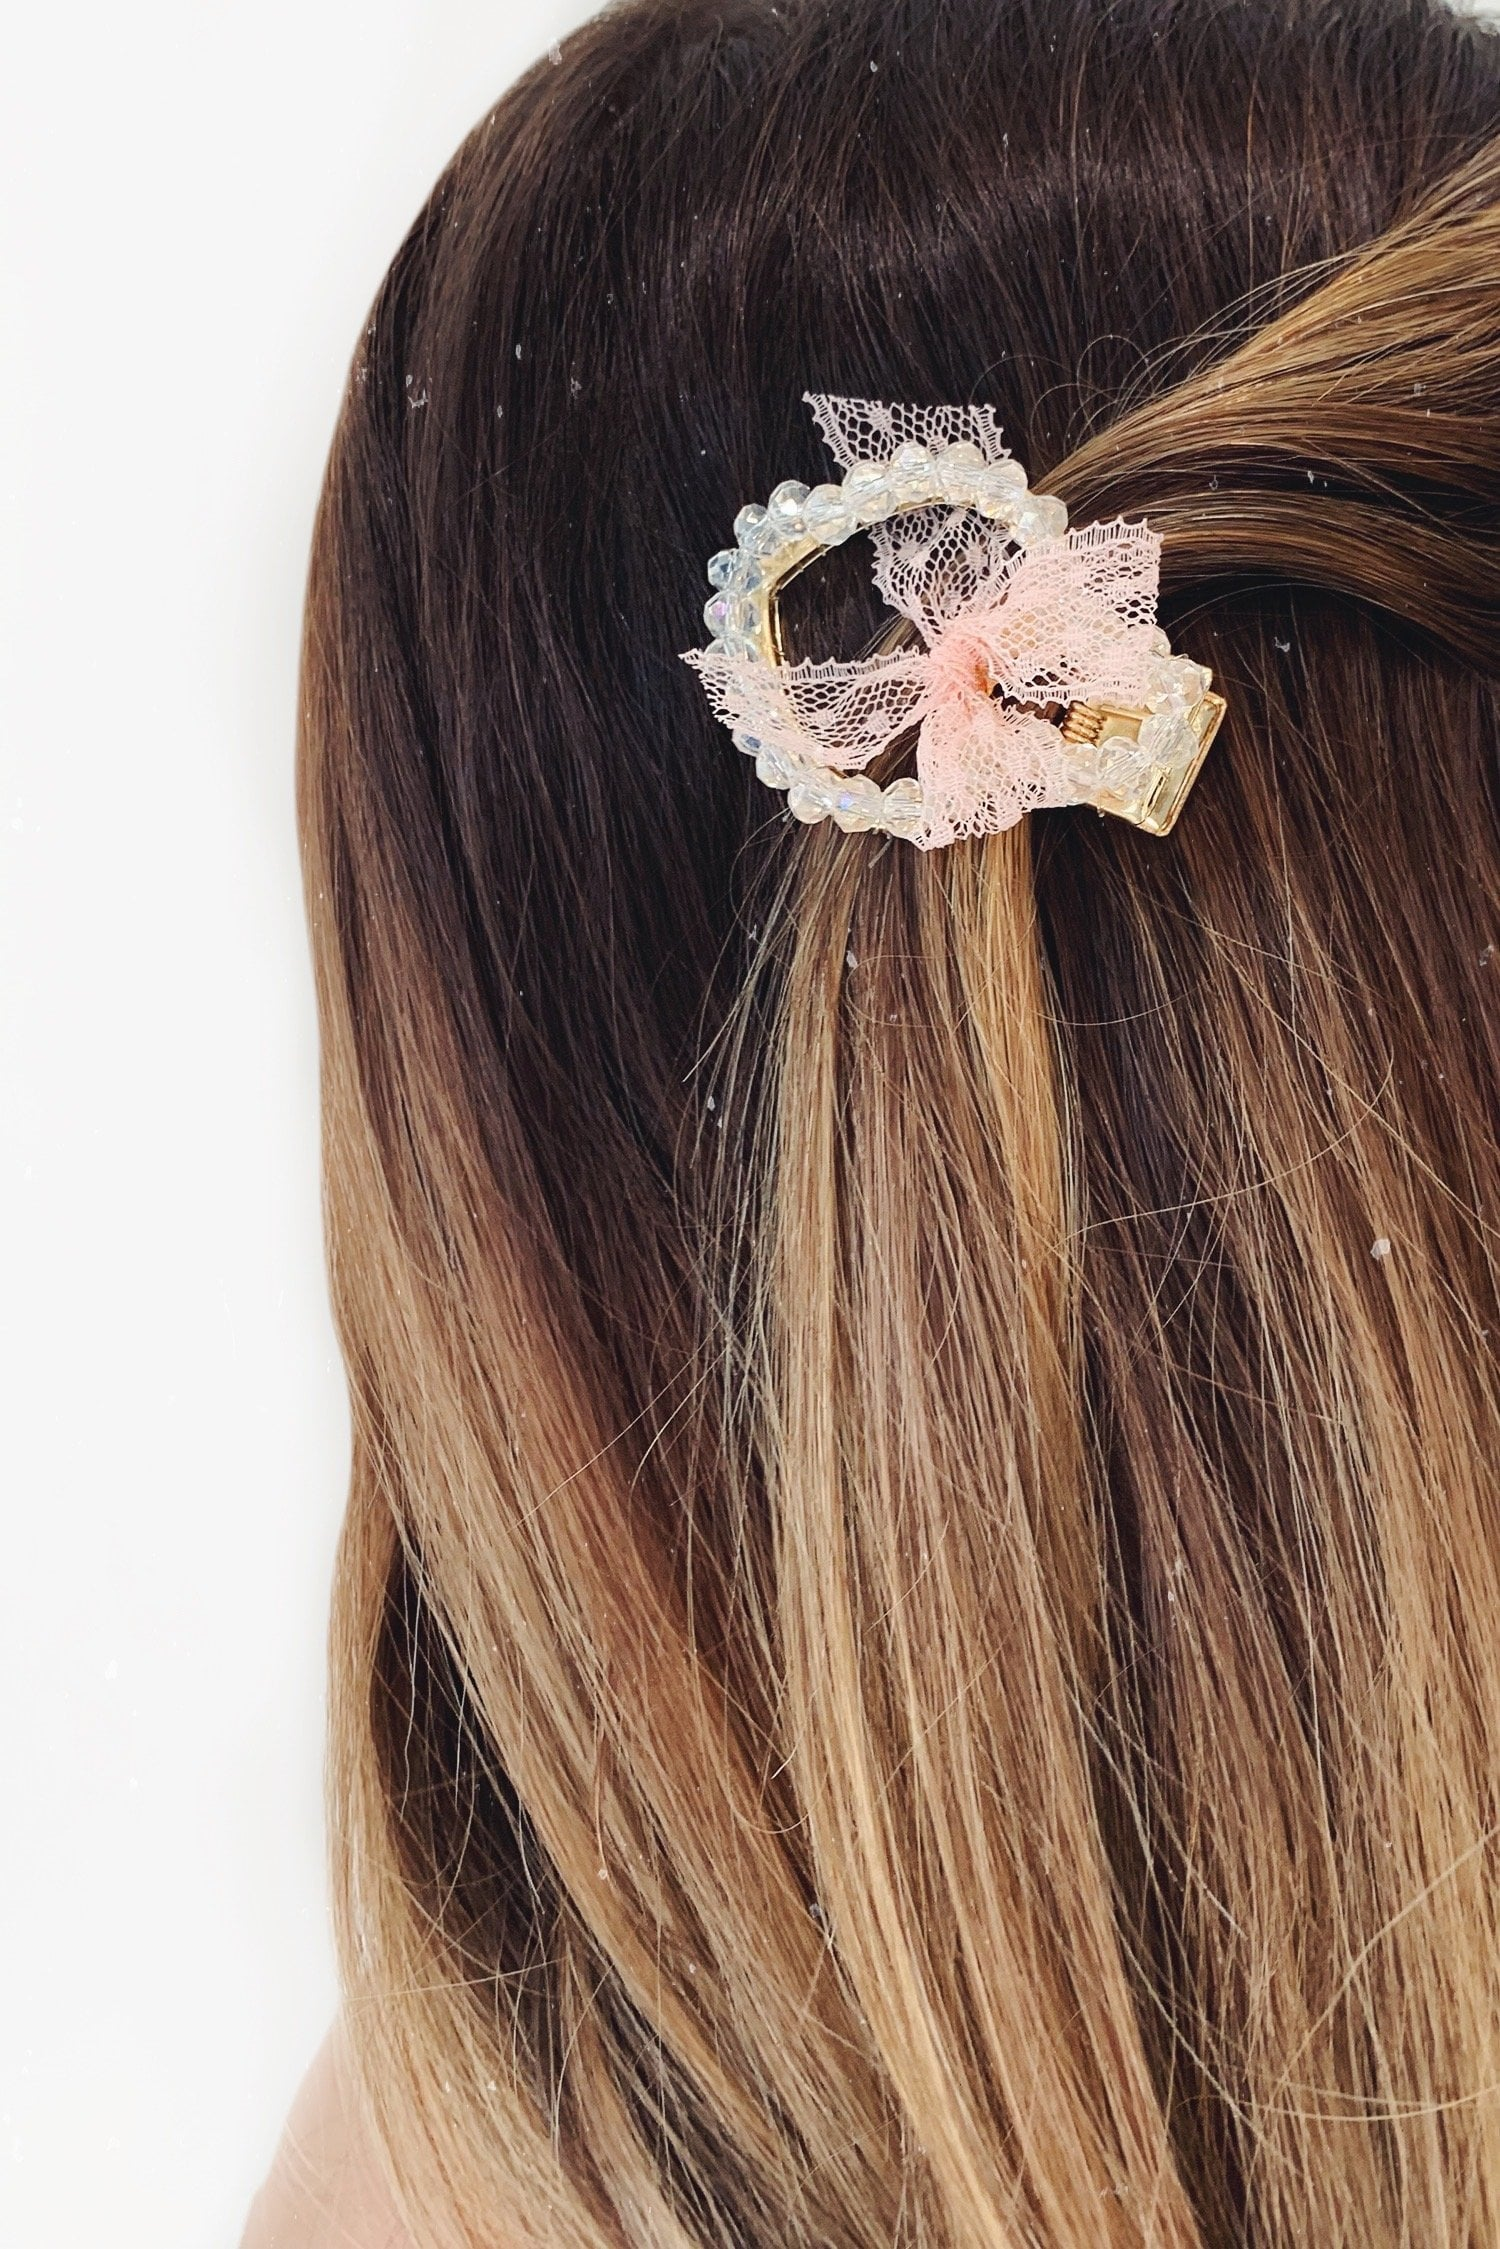 Crystal Heart Hair Clip with Light Pink Ribbon Detailing